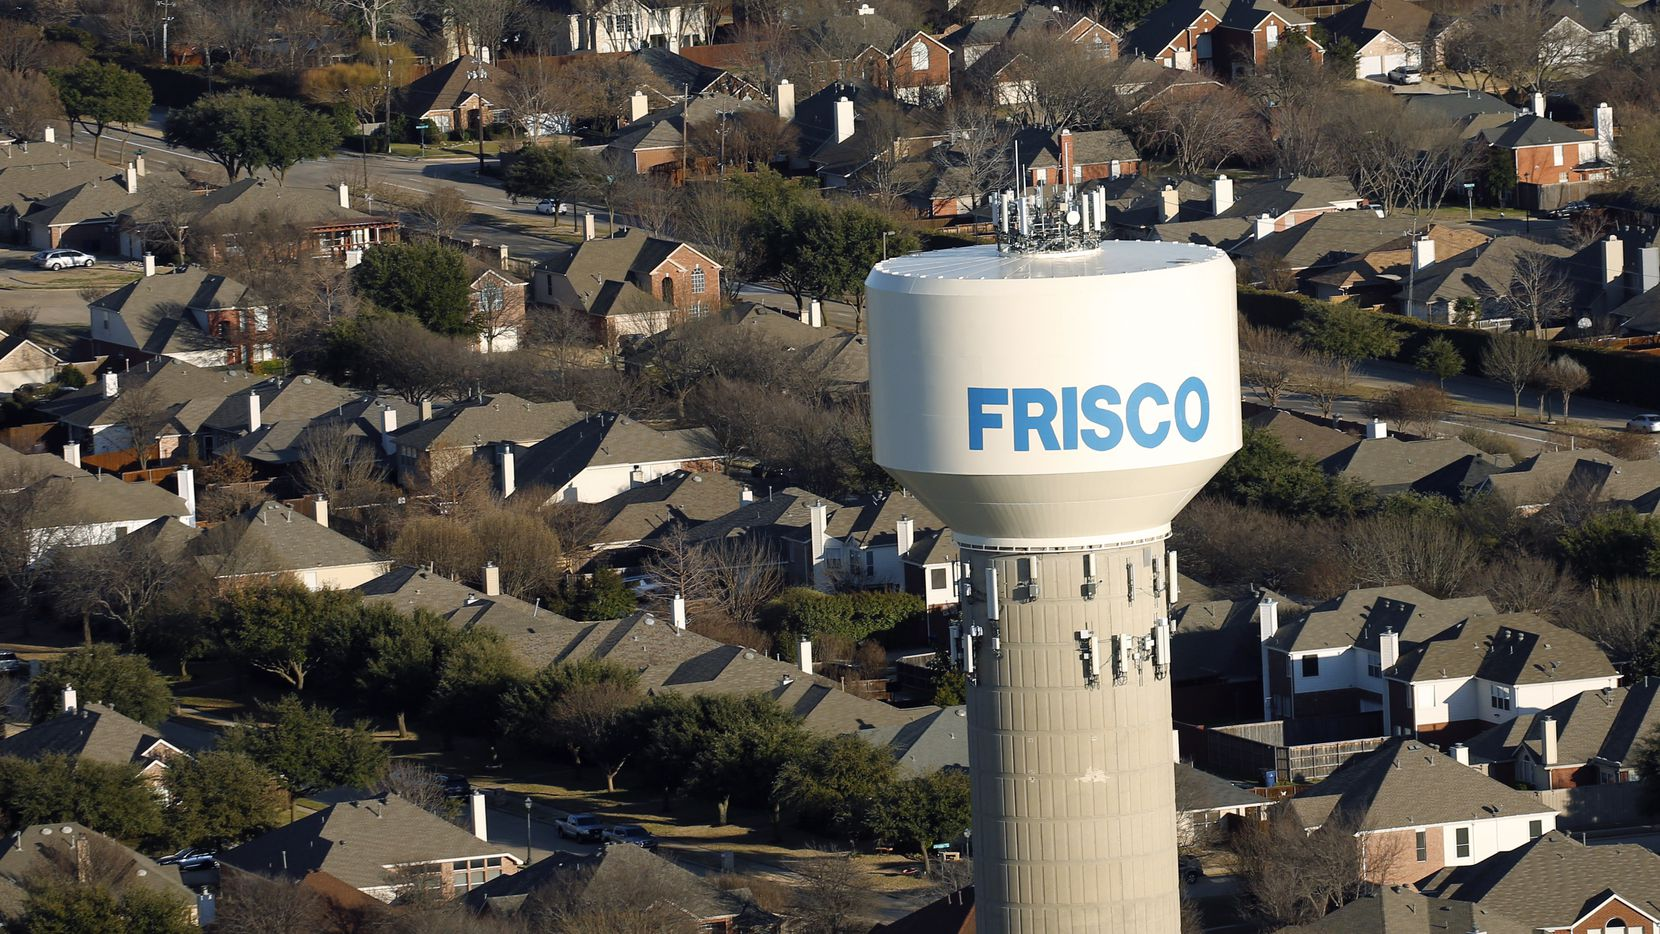 Frisco candidates will get another opportunity to speak before early voting begins this week.